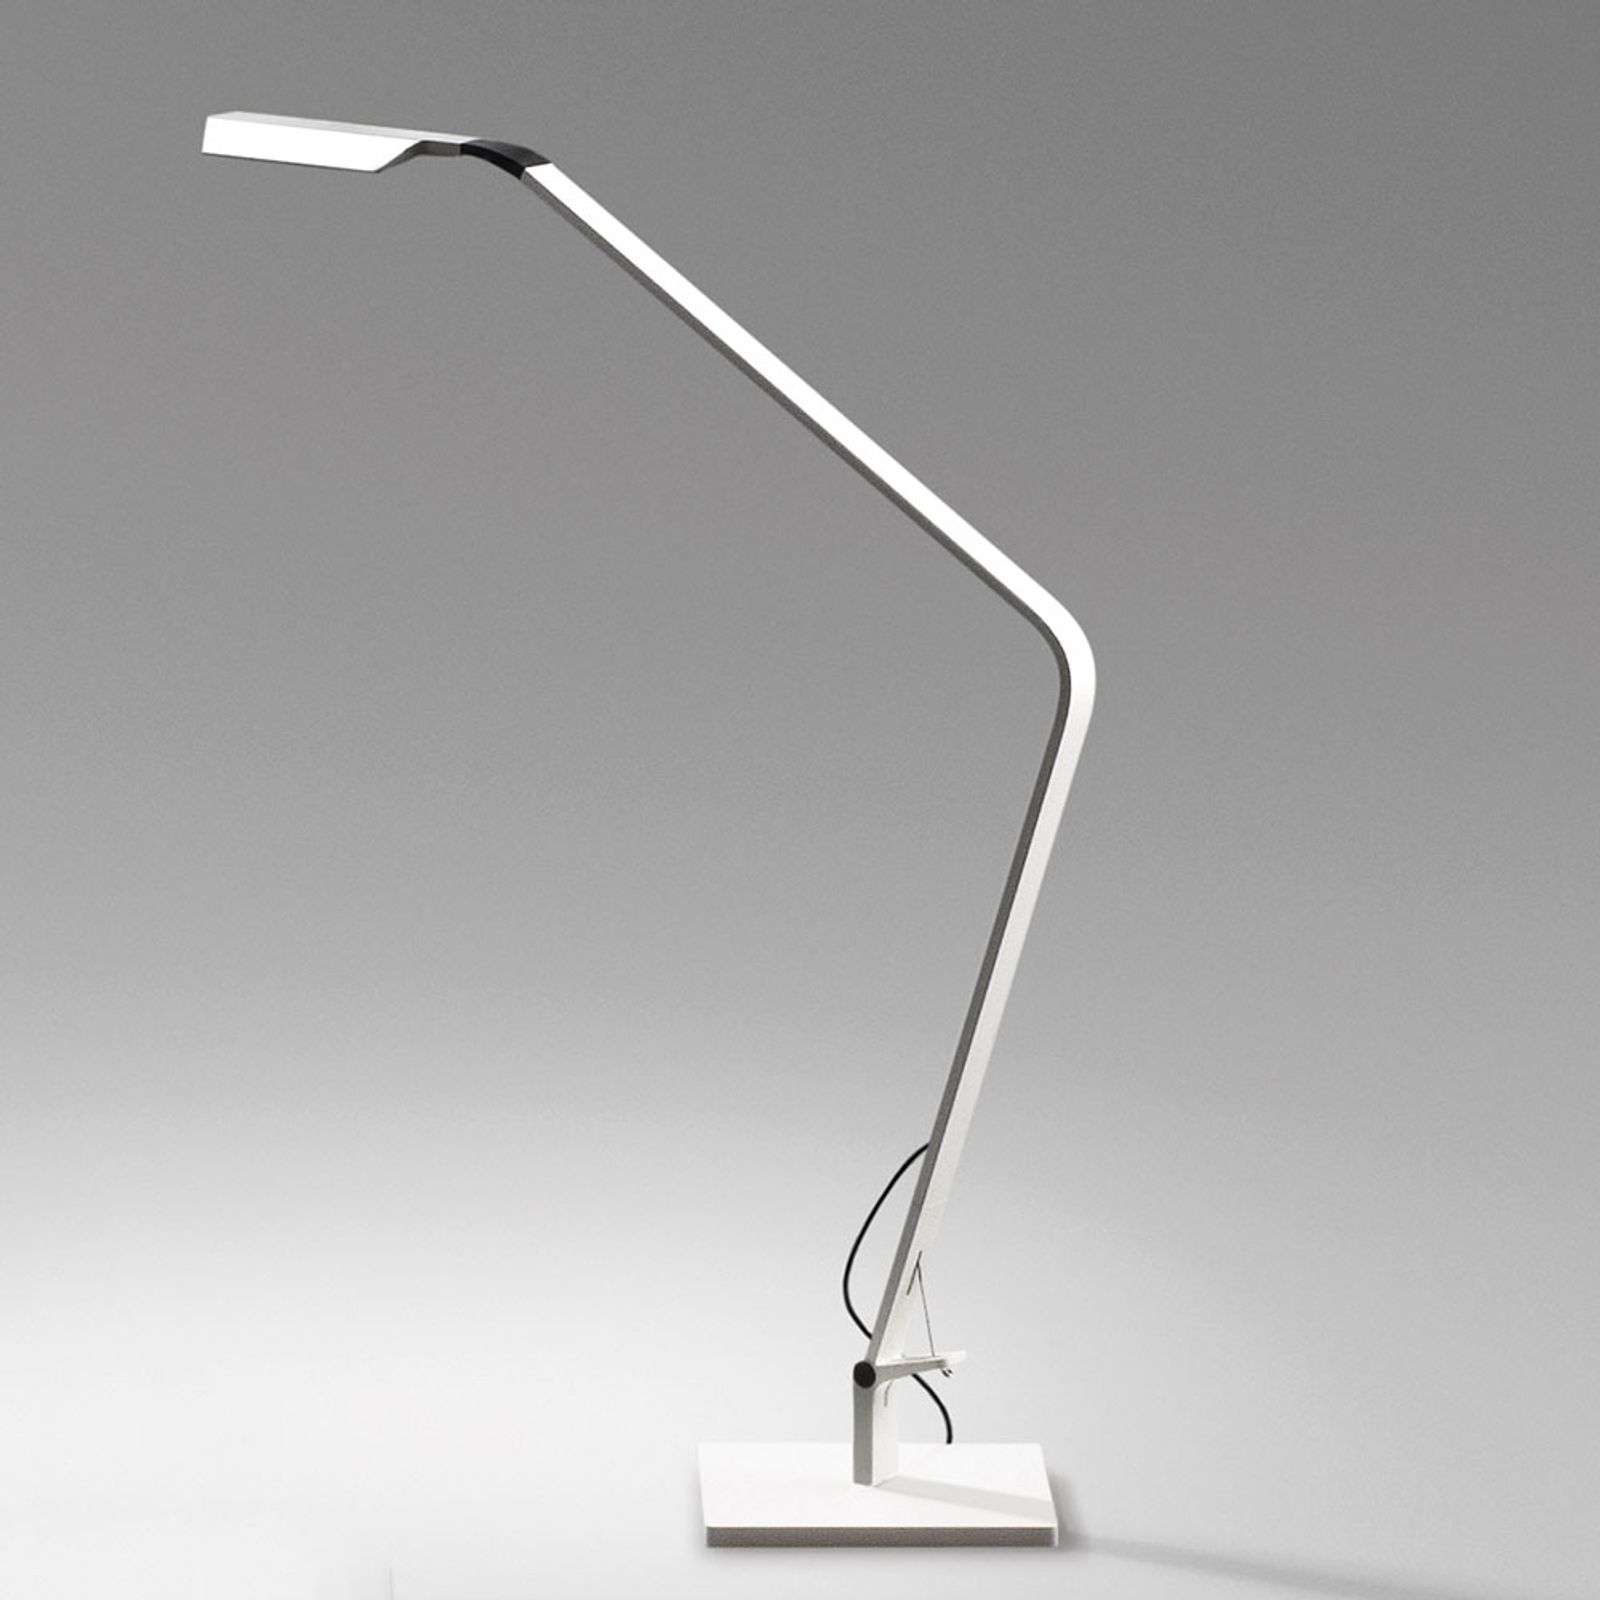 Lampe à poser LED Flex dimmable, blanc mat